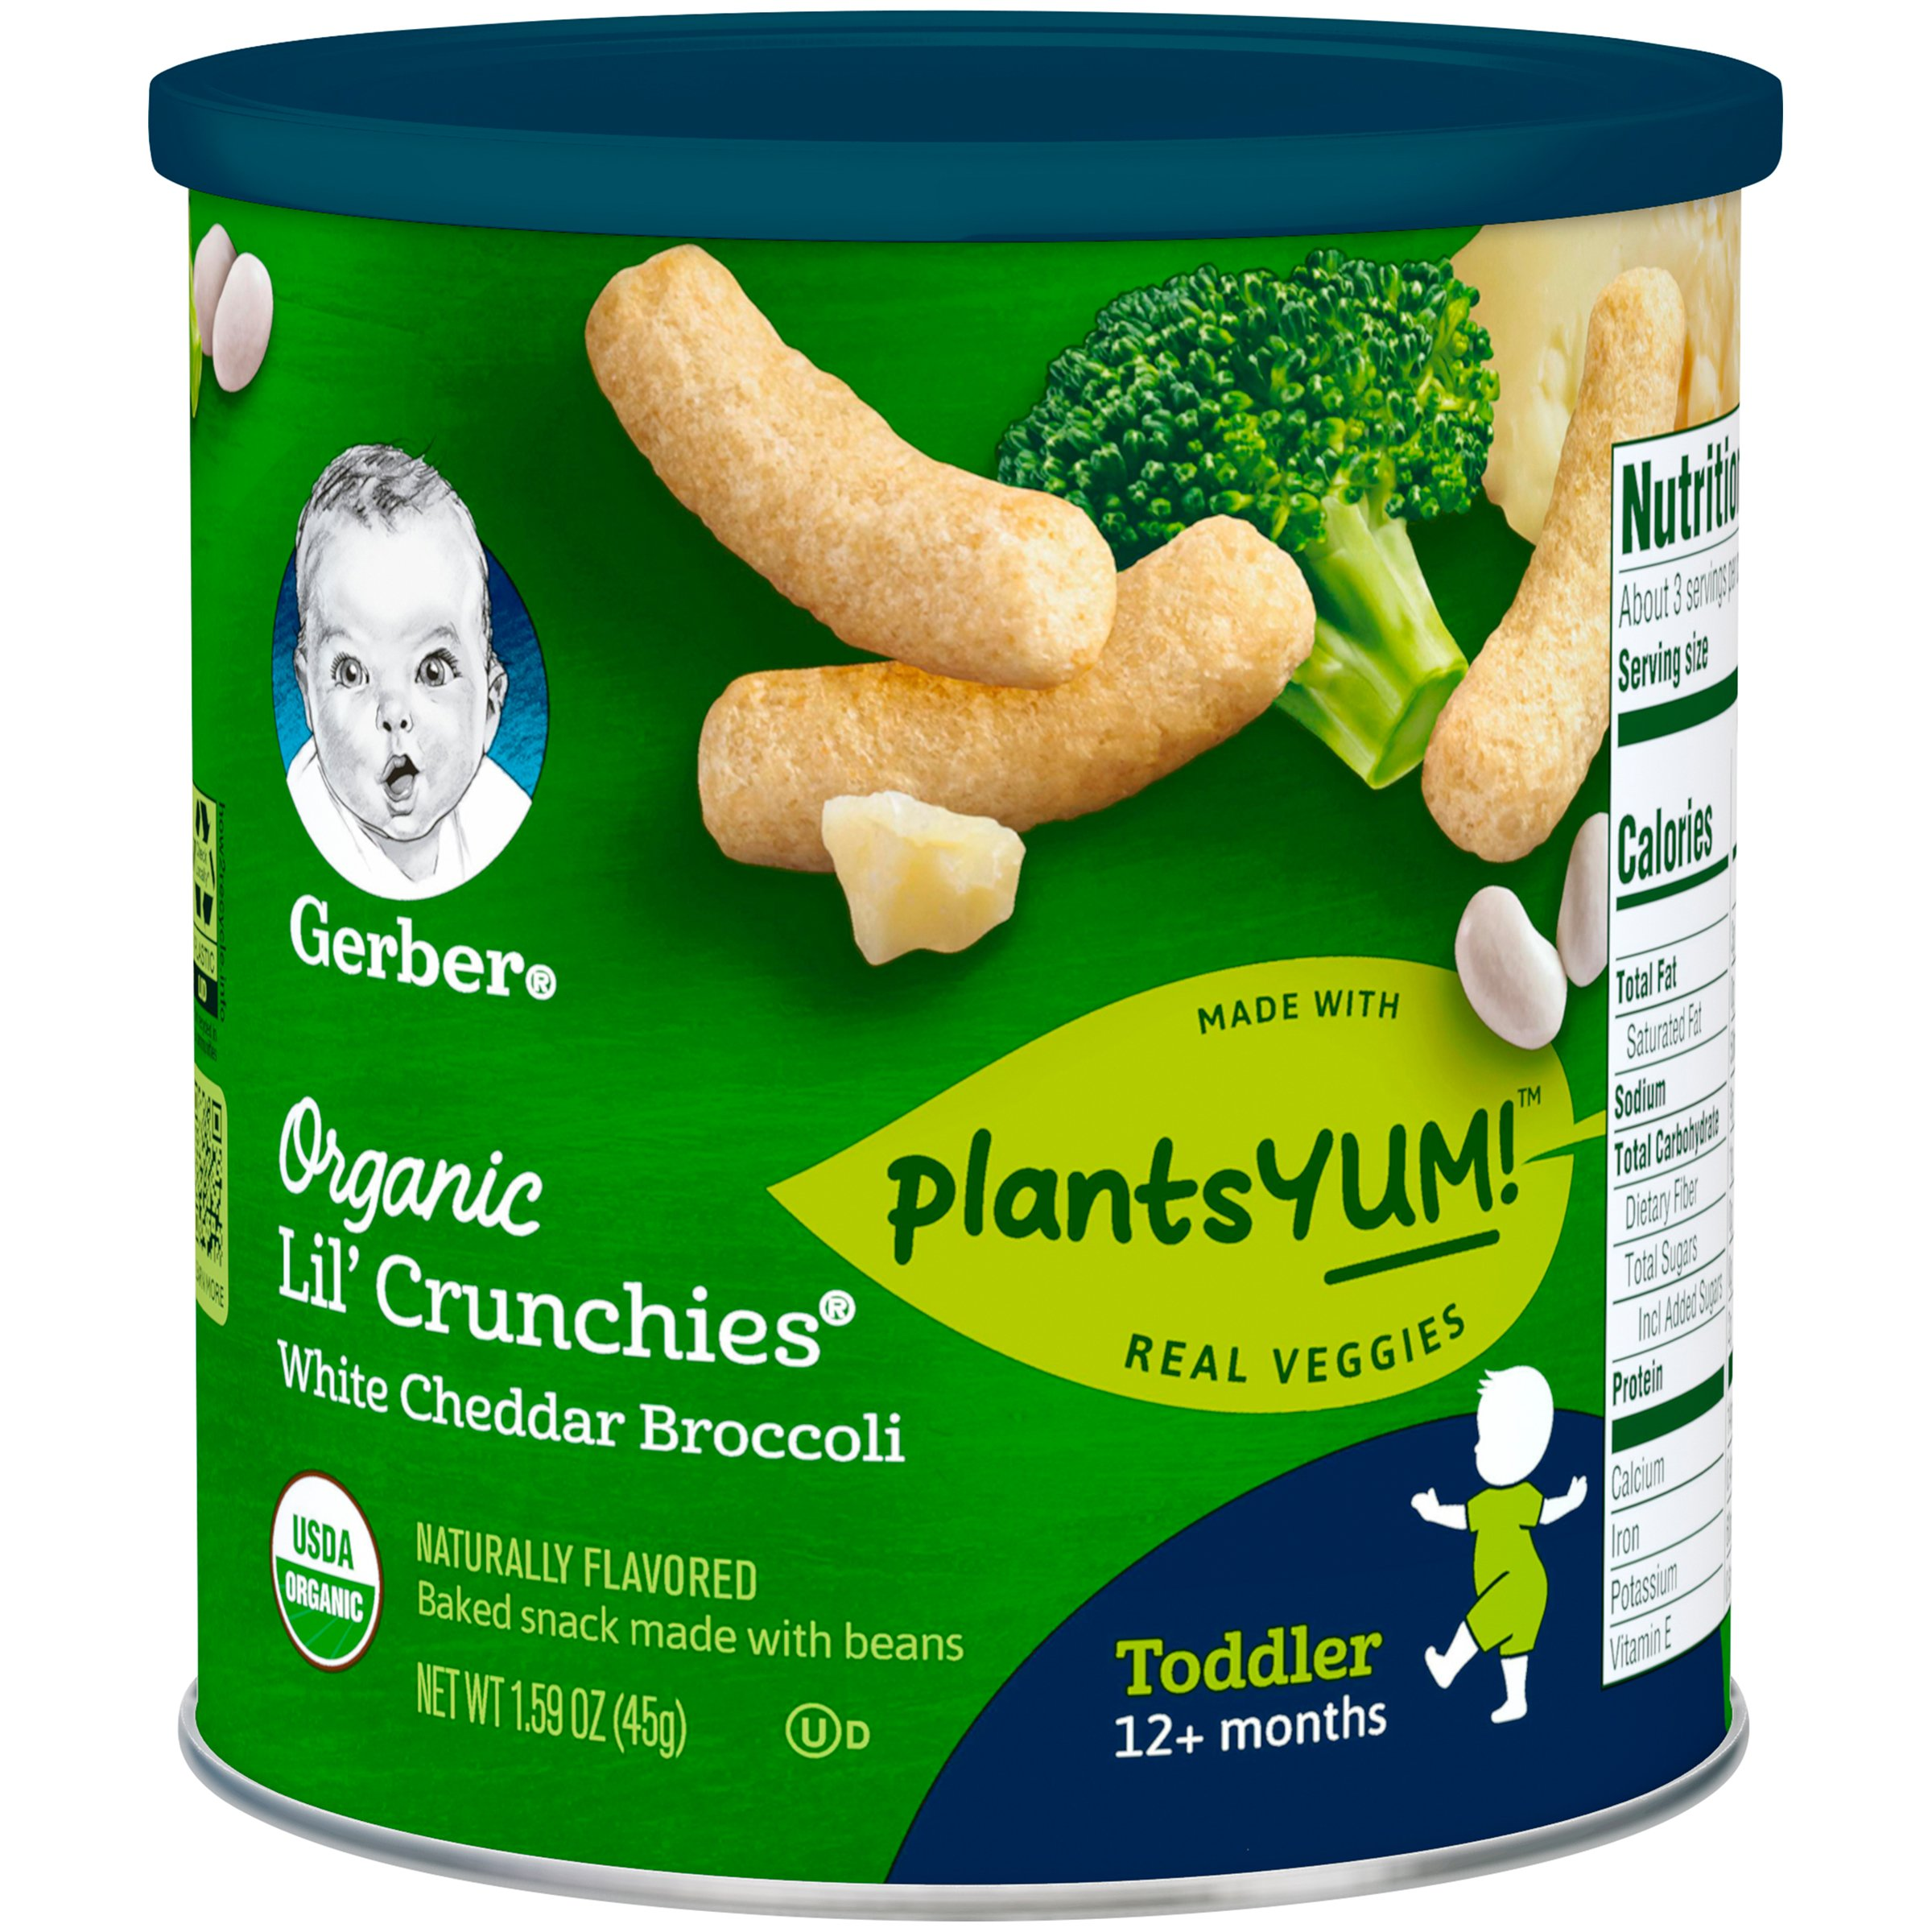 Gerber Organic Lil' Crunches Baked Corn Snack White Cheddar & Broccoli (Pack of 6) by Gerber